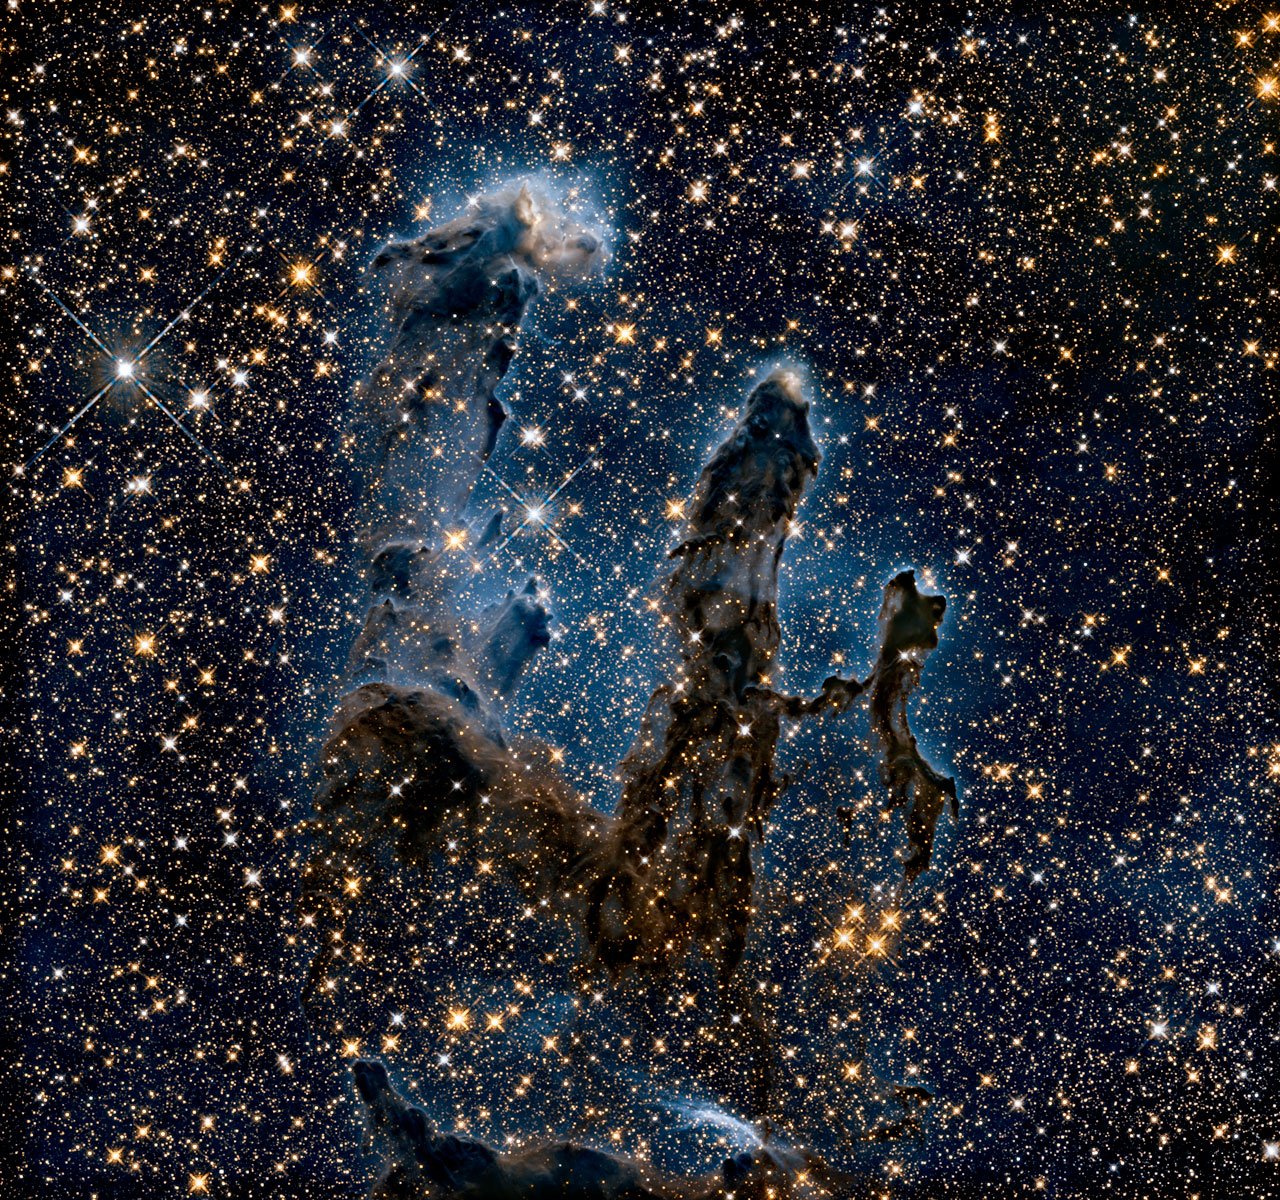 New view of the Pillars of Creation, infrared light. NASA, ESA/Hubble and the Hubble Heritage Team.